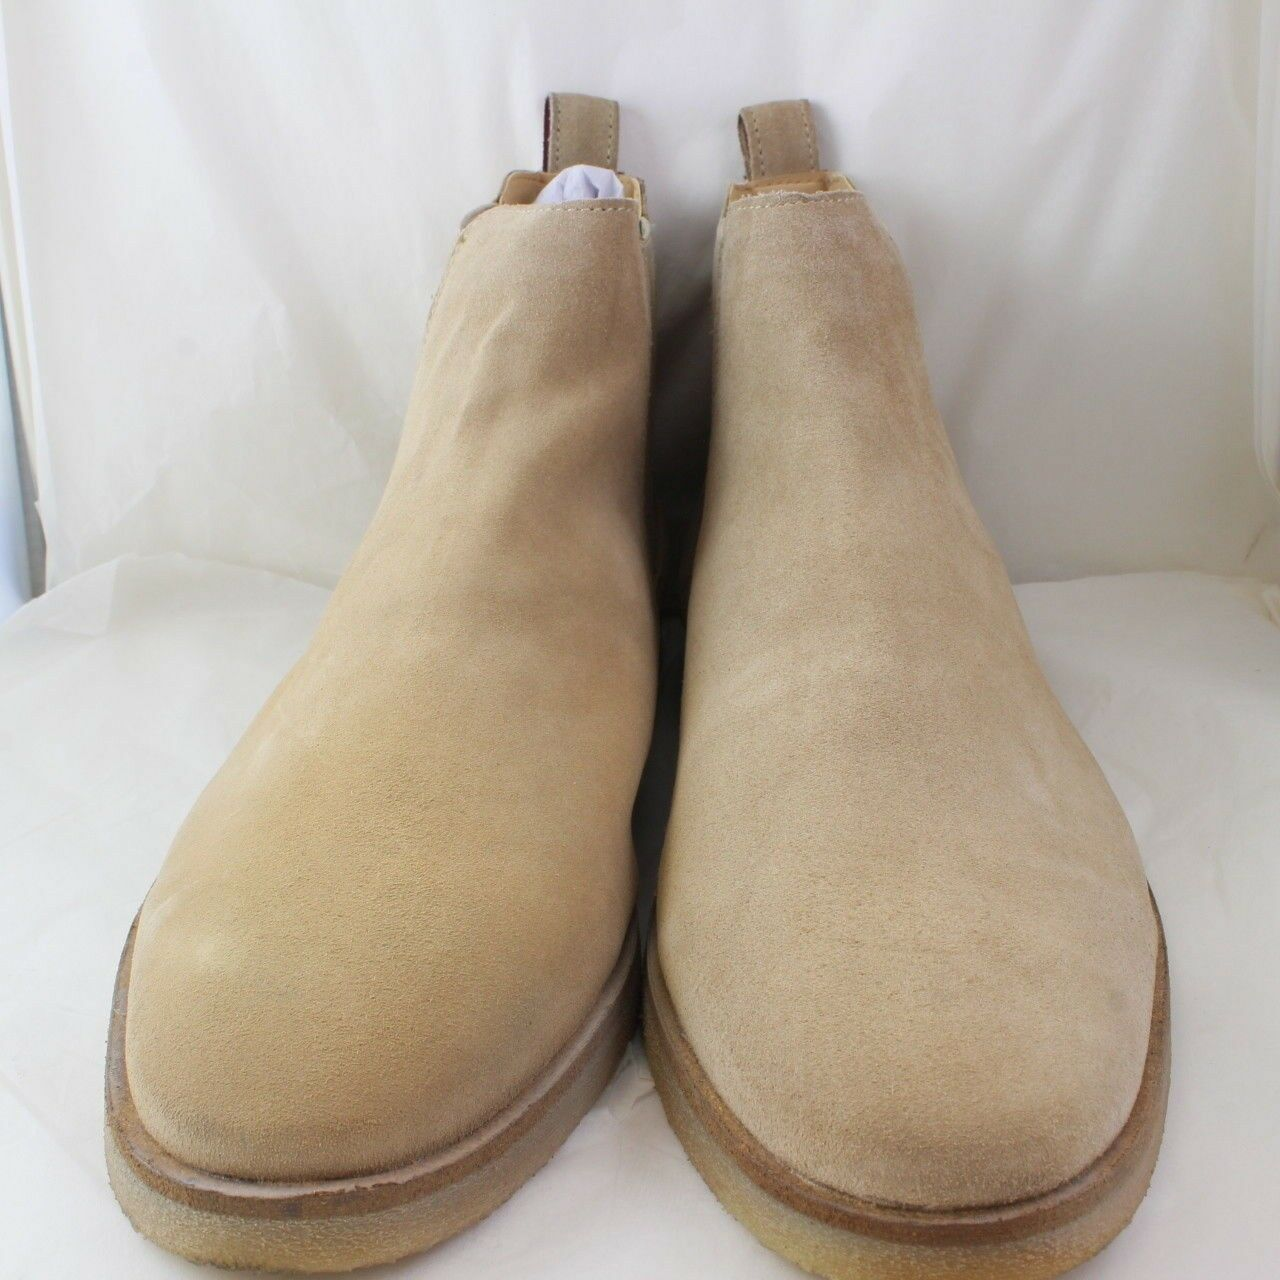 A Genuine Men's WALK LONDON Beige Suede Pull On Ankle Boots Size UK 10